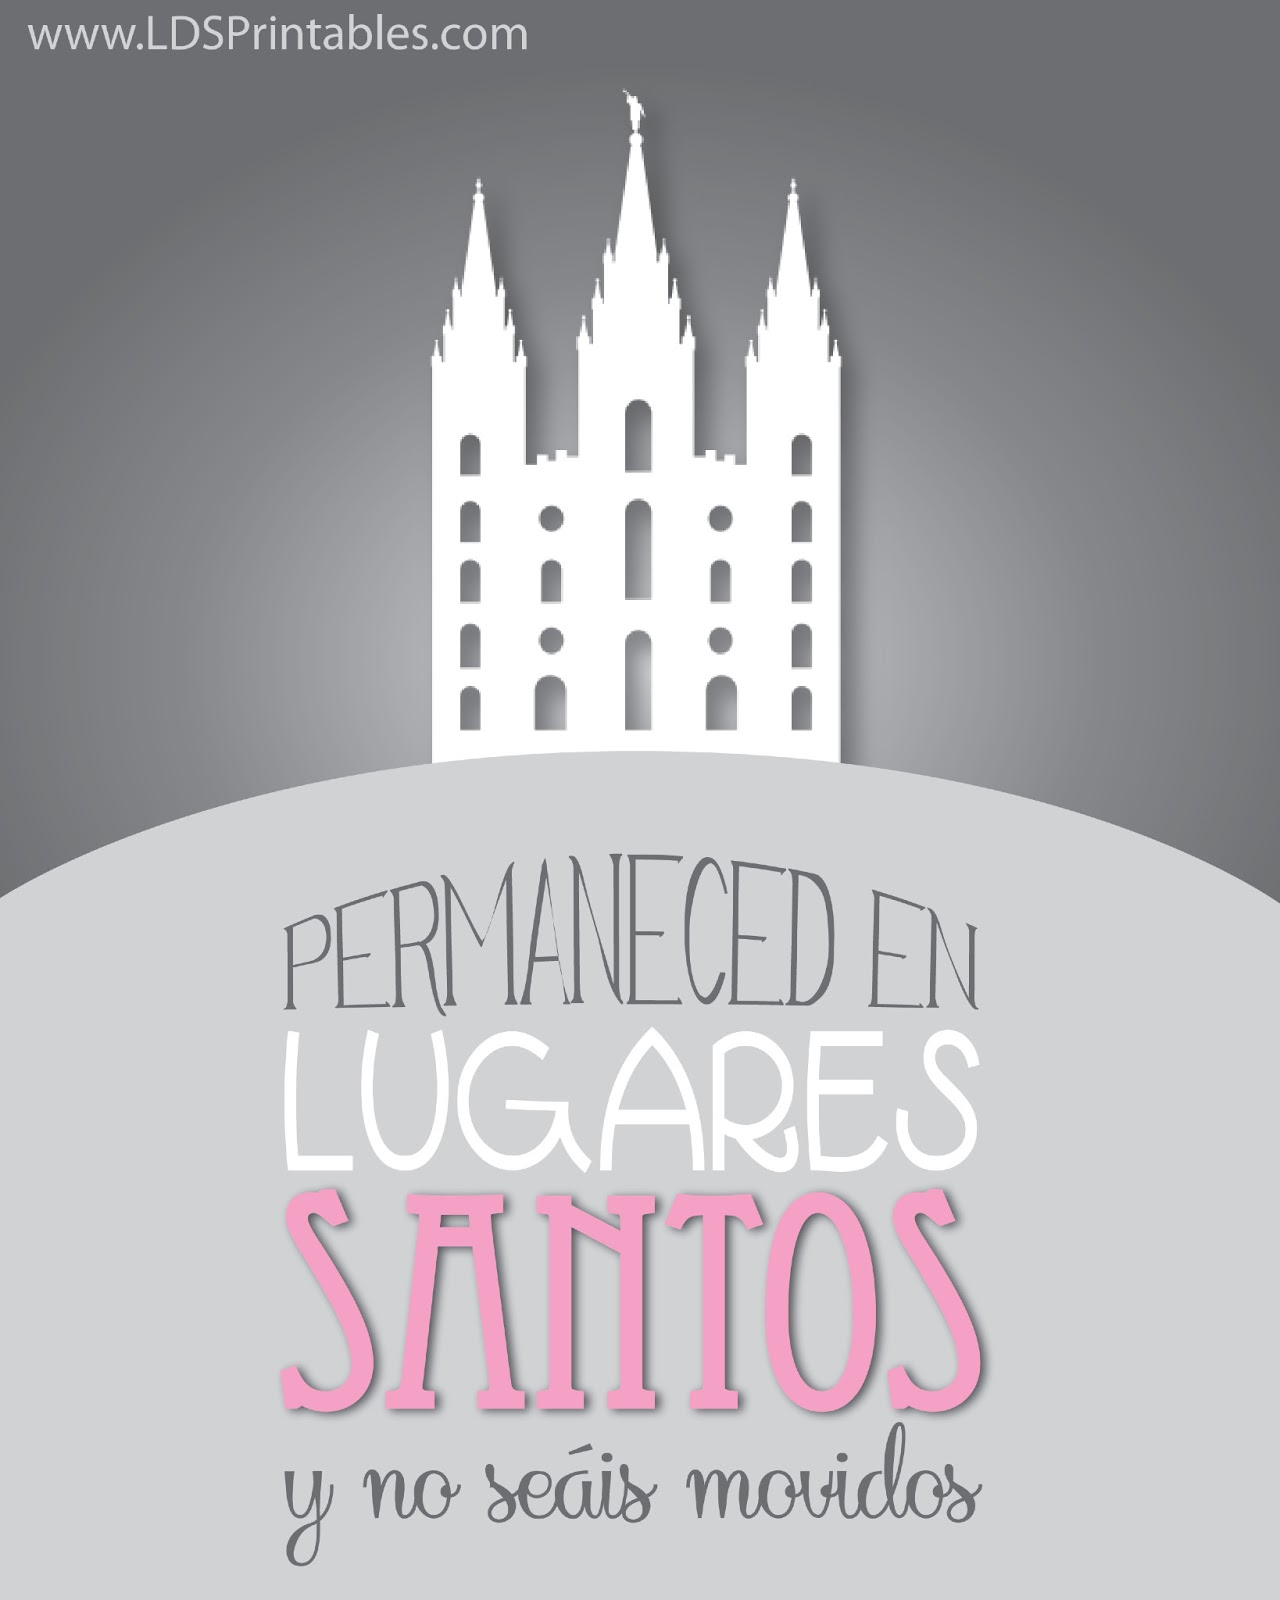 LDS Printables: Stand Ye in Holy Places - Permaneced en ...